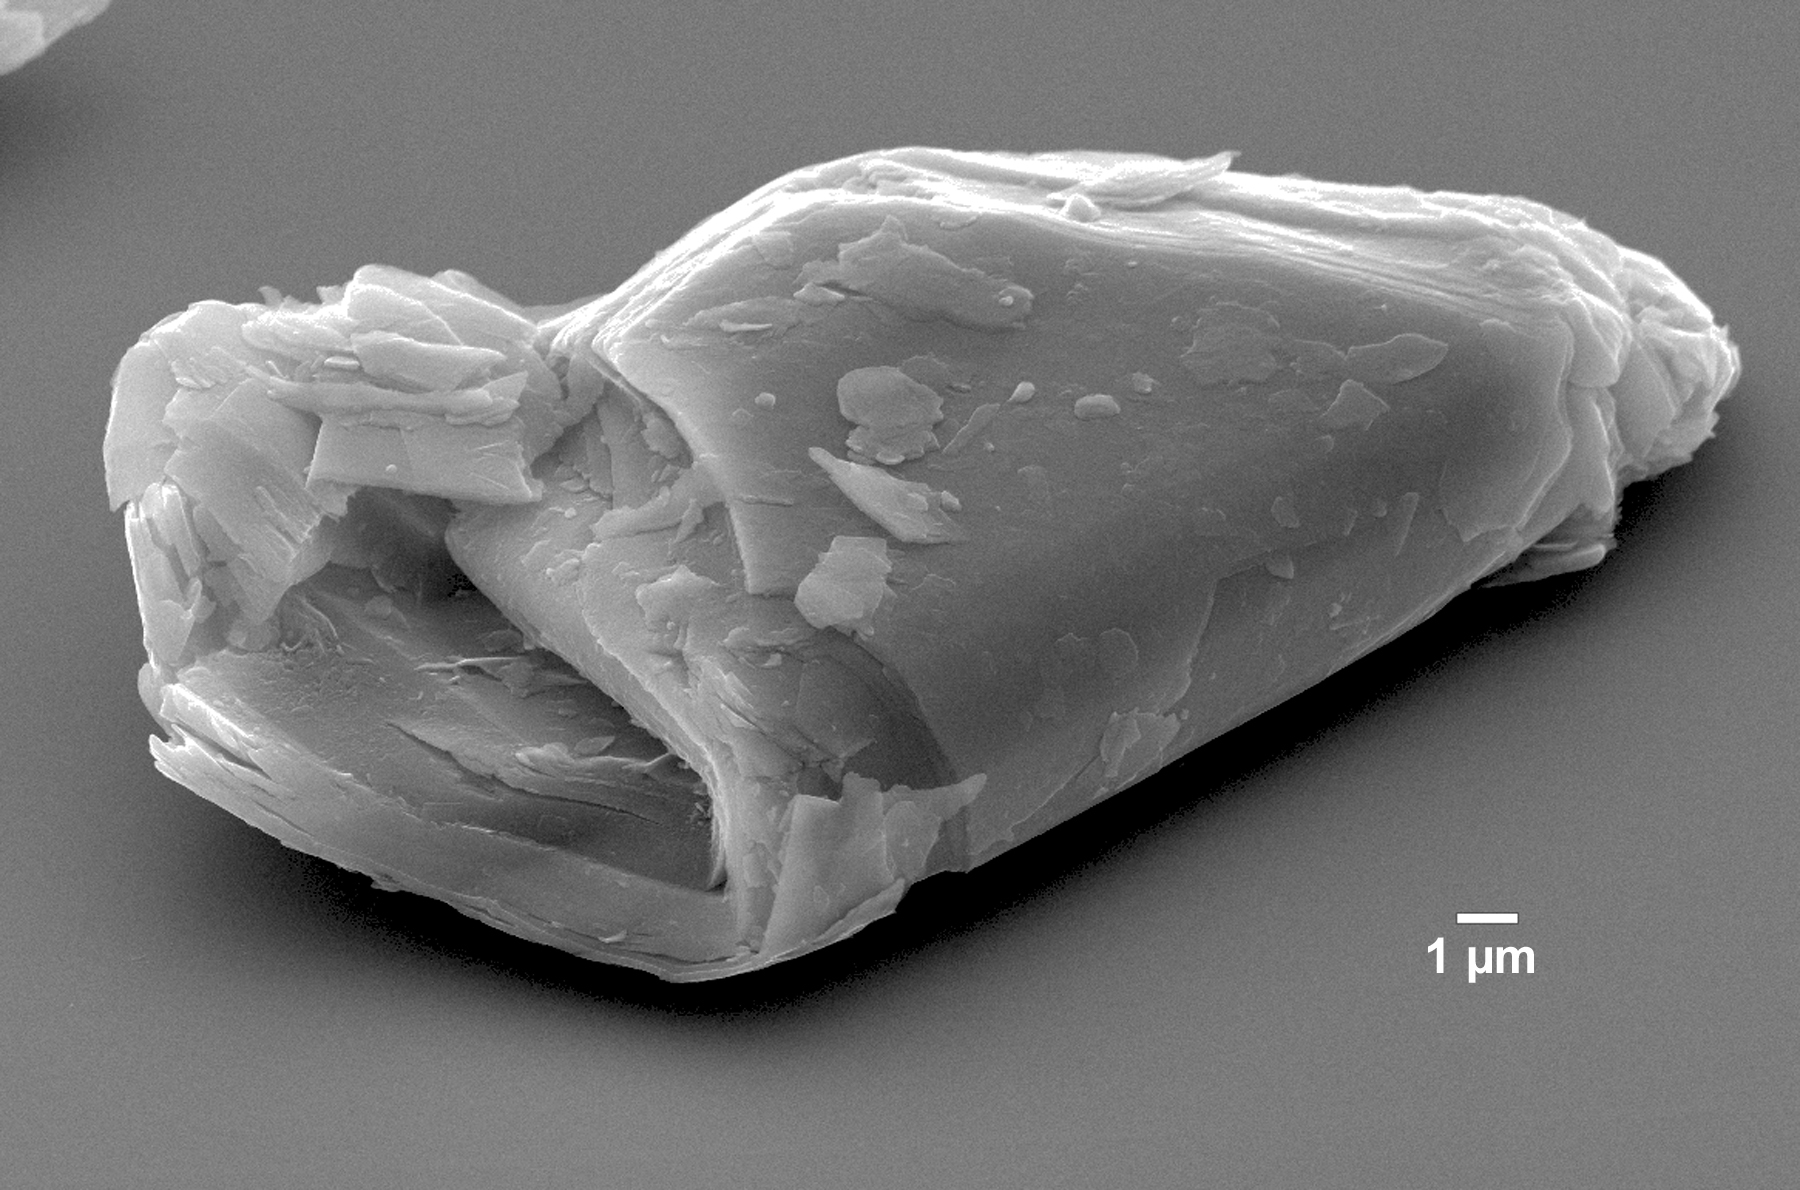 sem analysis of folded talc